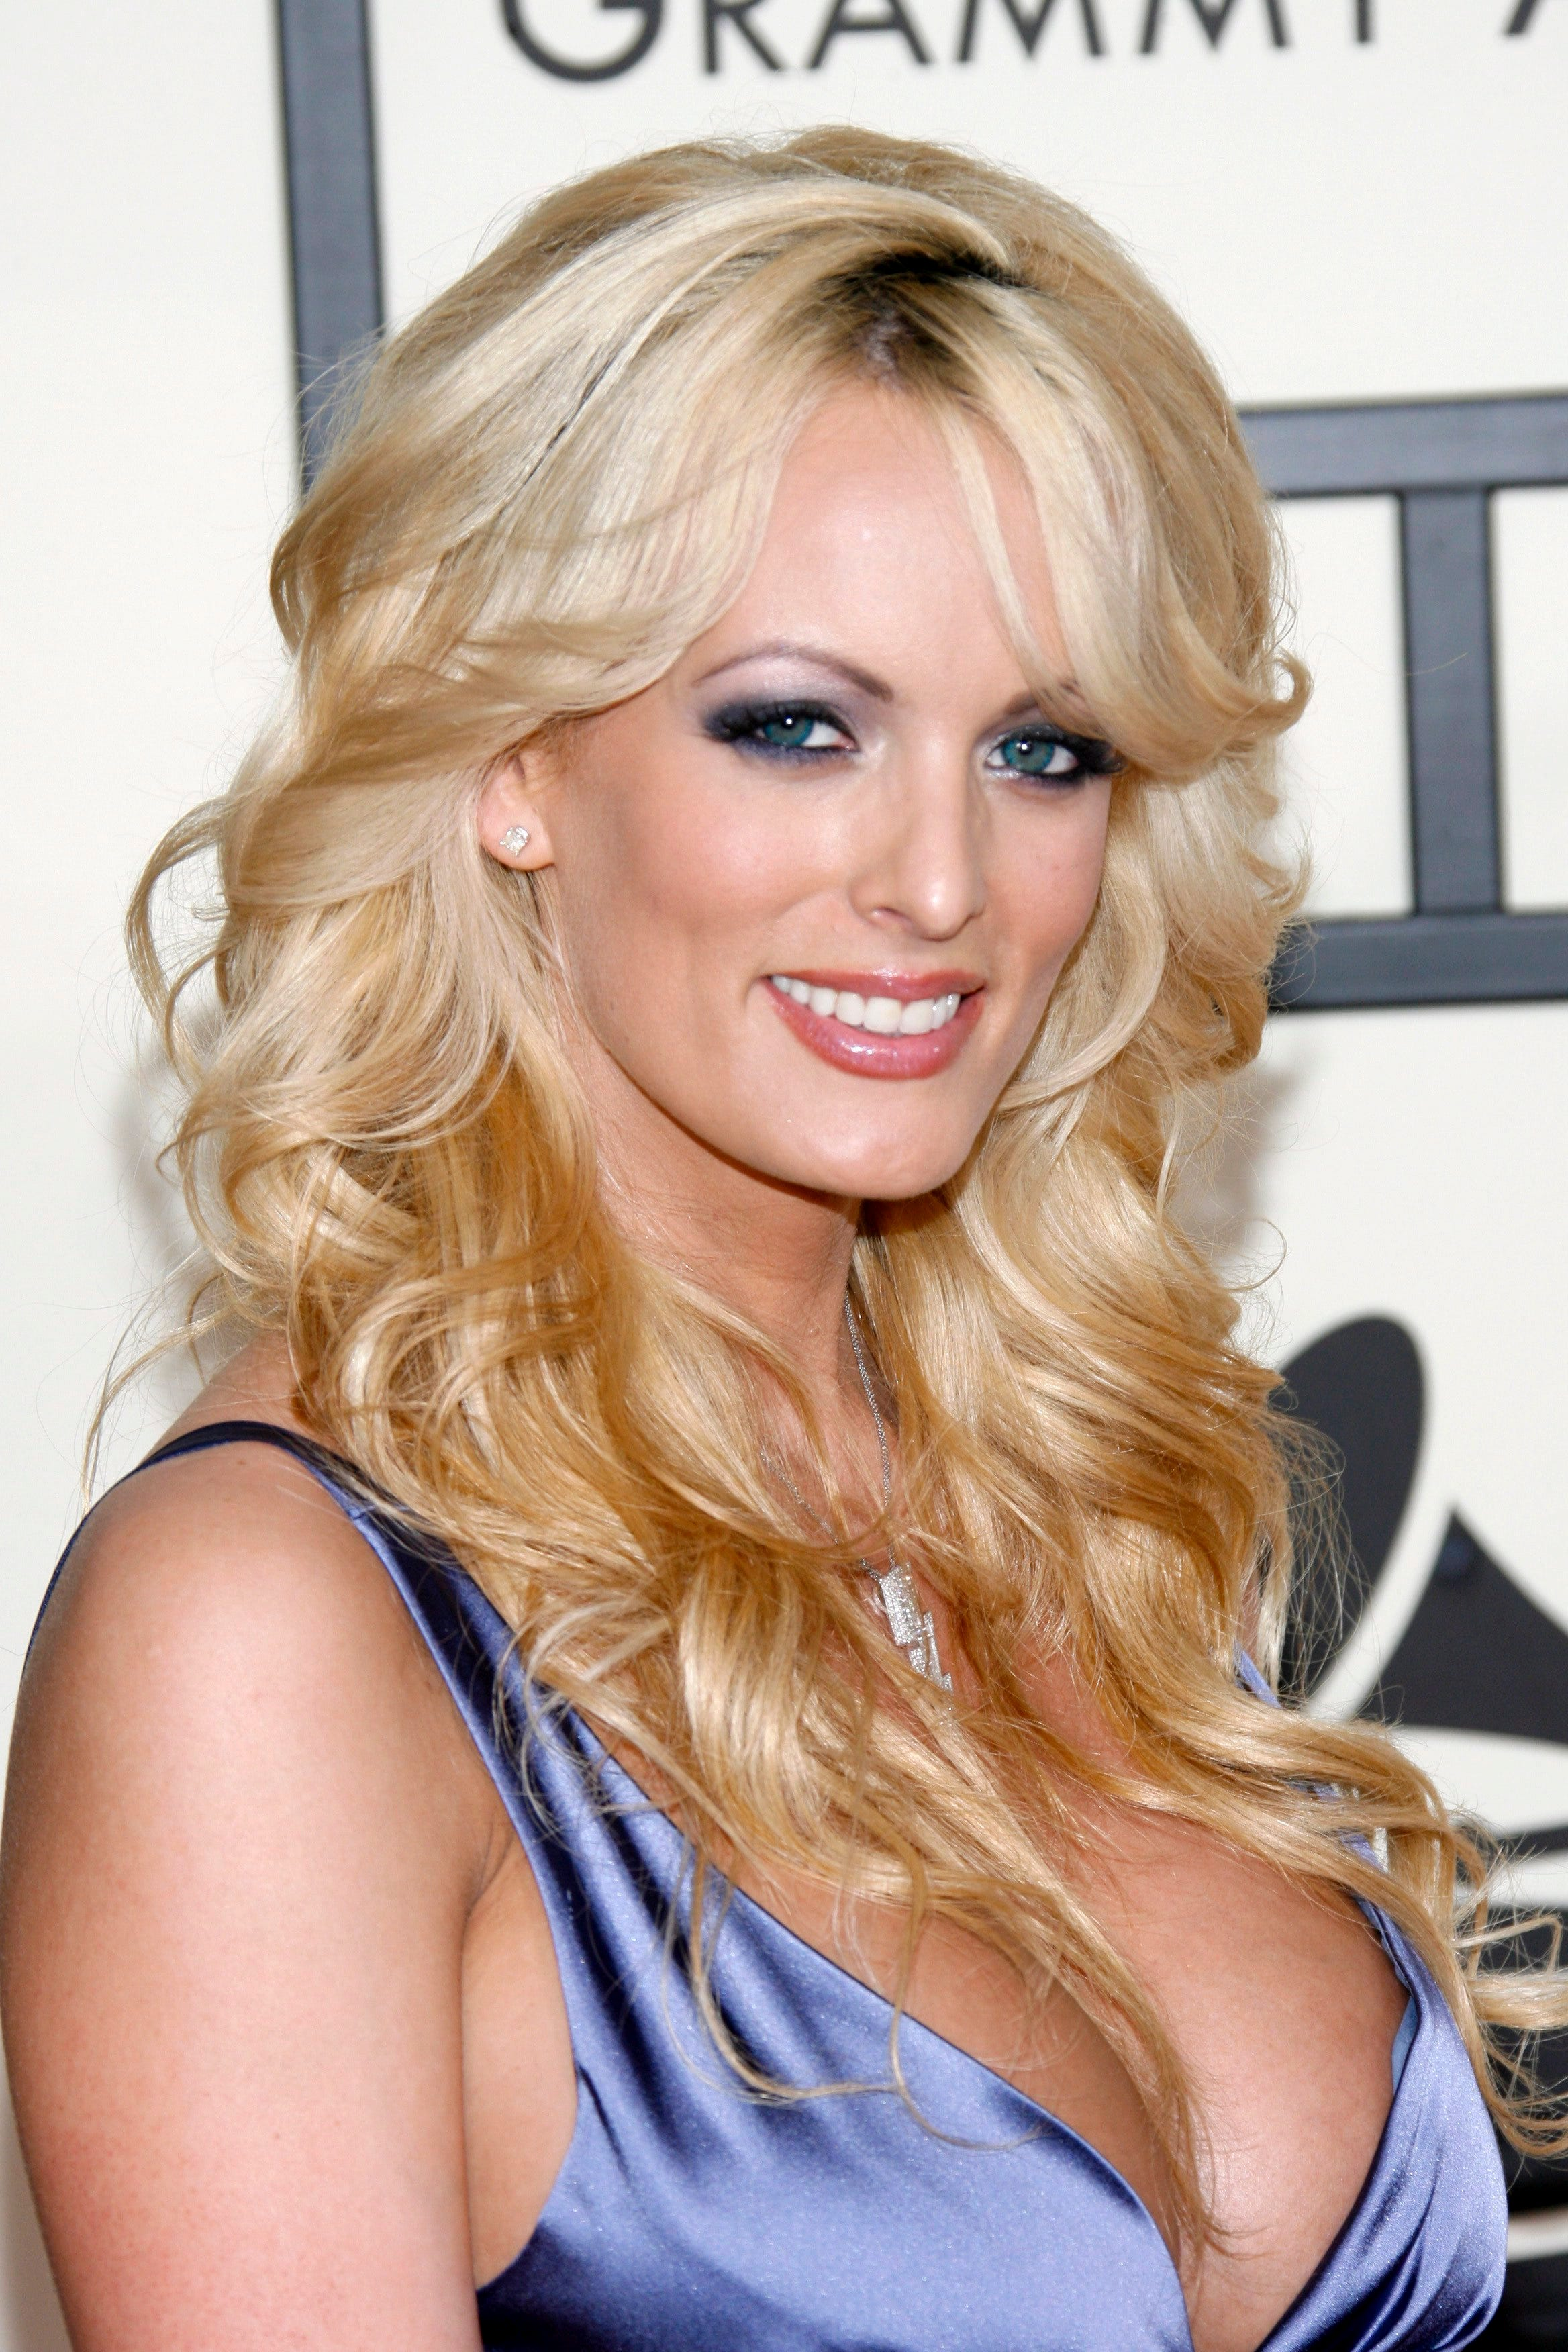 President Trumps Lawyer Secured A Restraining Order Against Porn Star Stormy Daniels